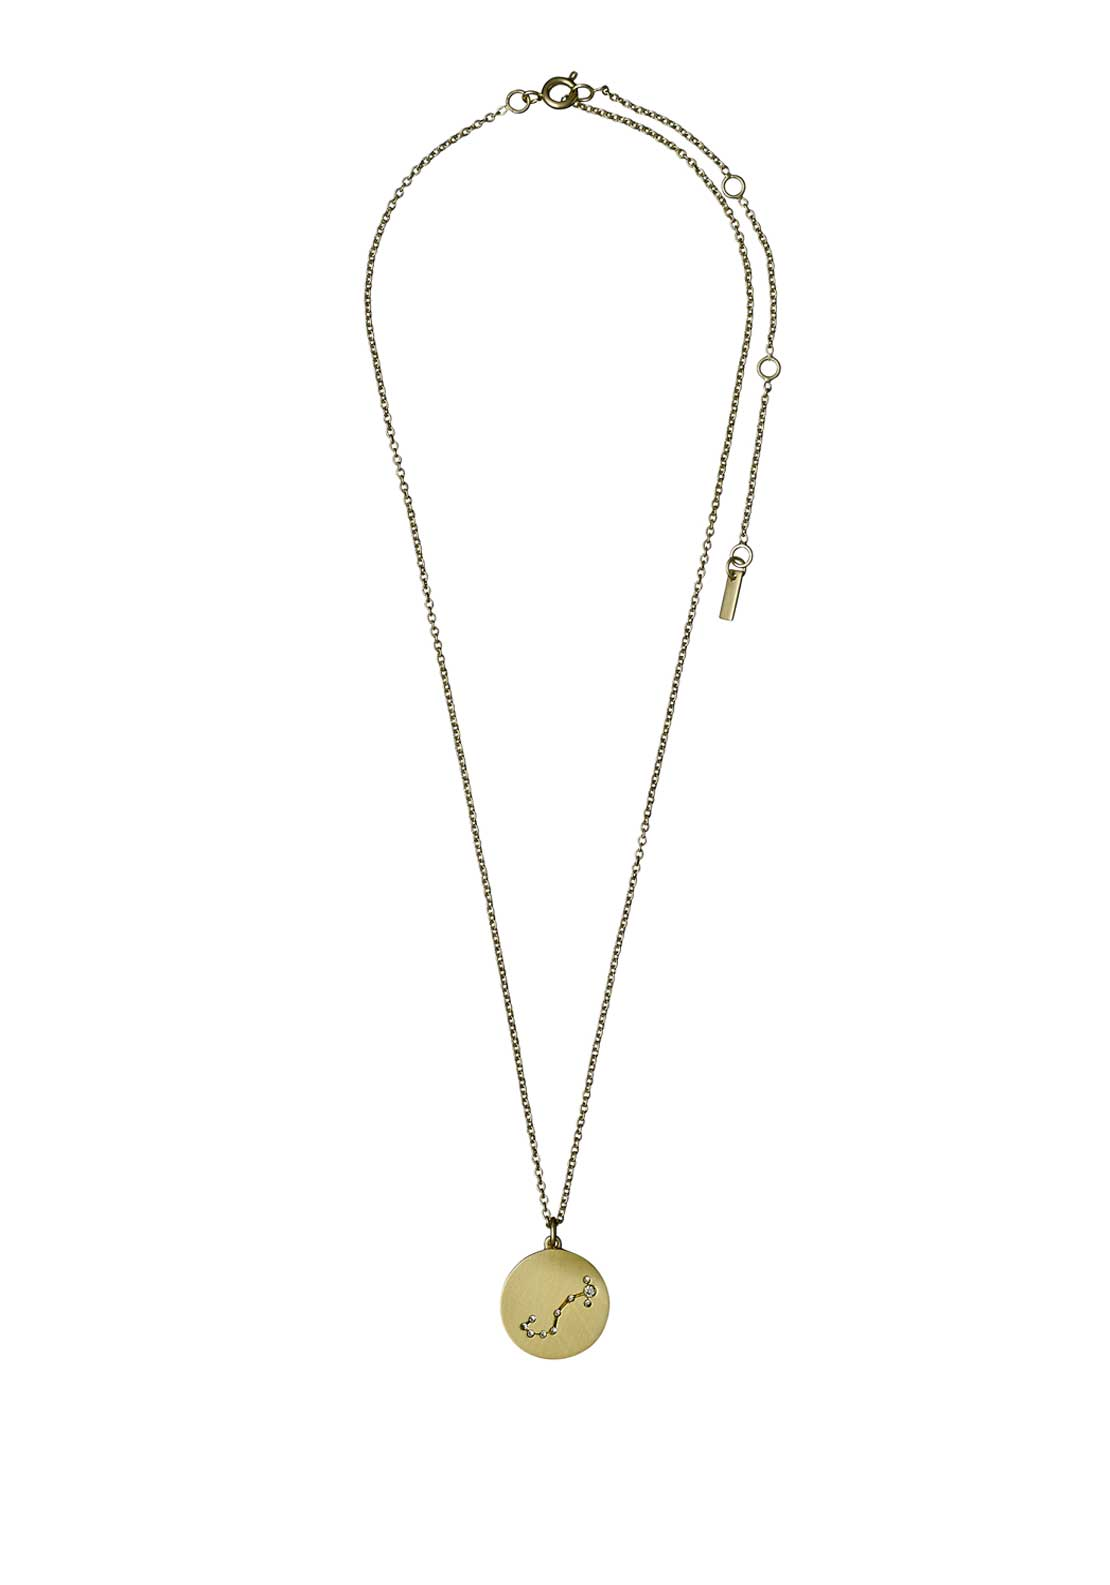 Pilgrim Scorpio Zodiac Sign Necklace, Gold